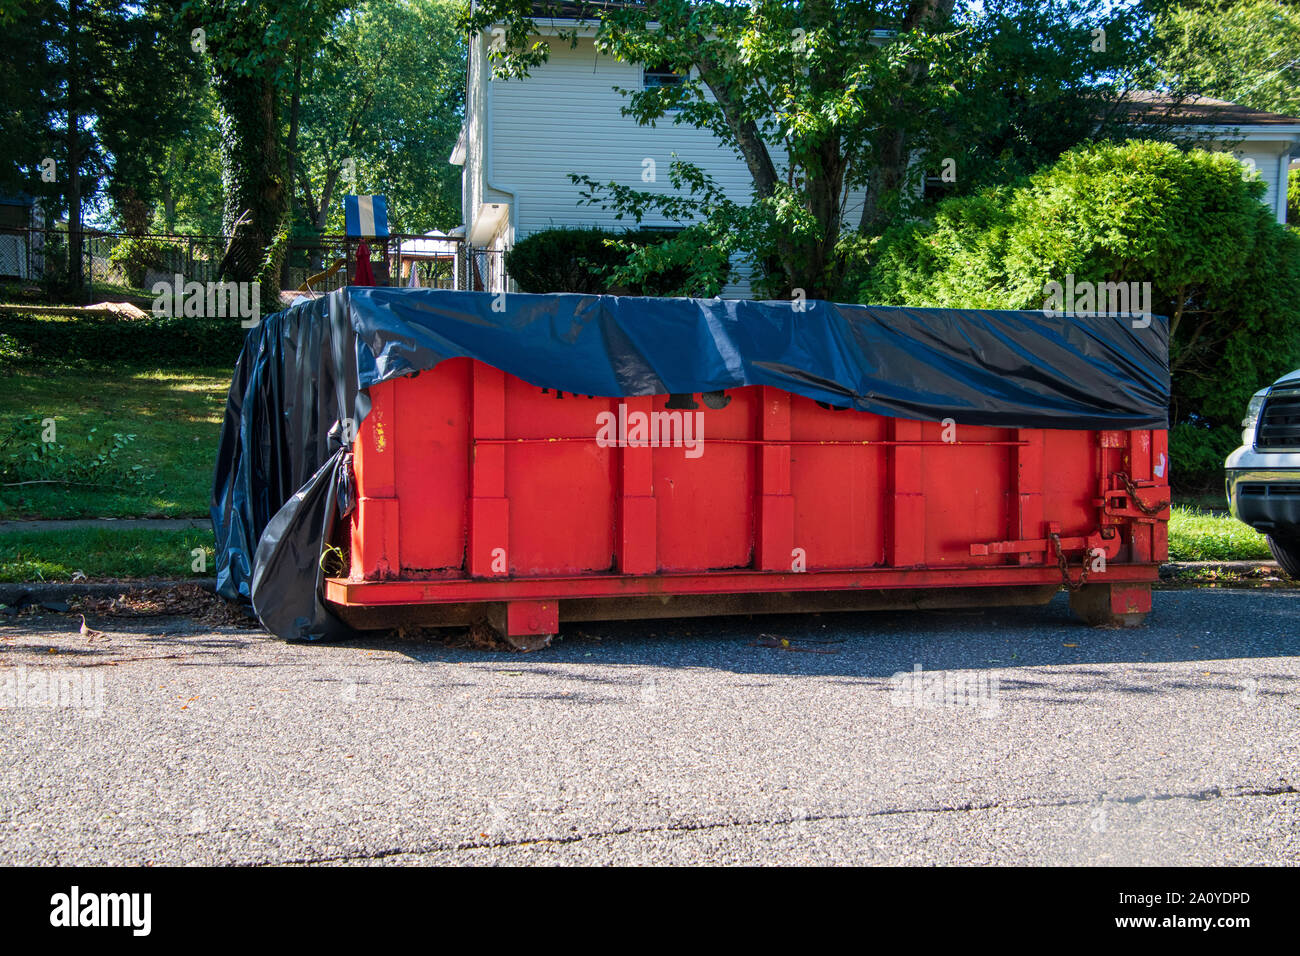 Red dumpster with black plastic liner on a asphalt street near the side of a house with trees in the background Stock Photo